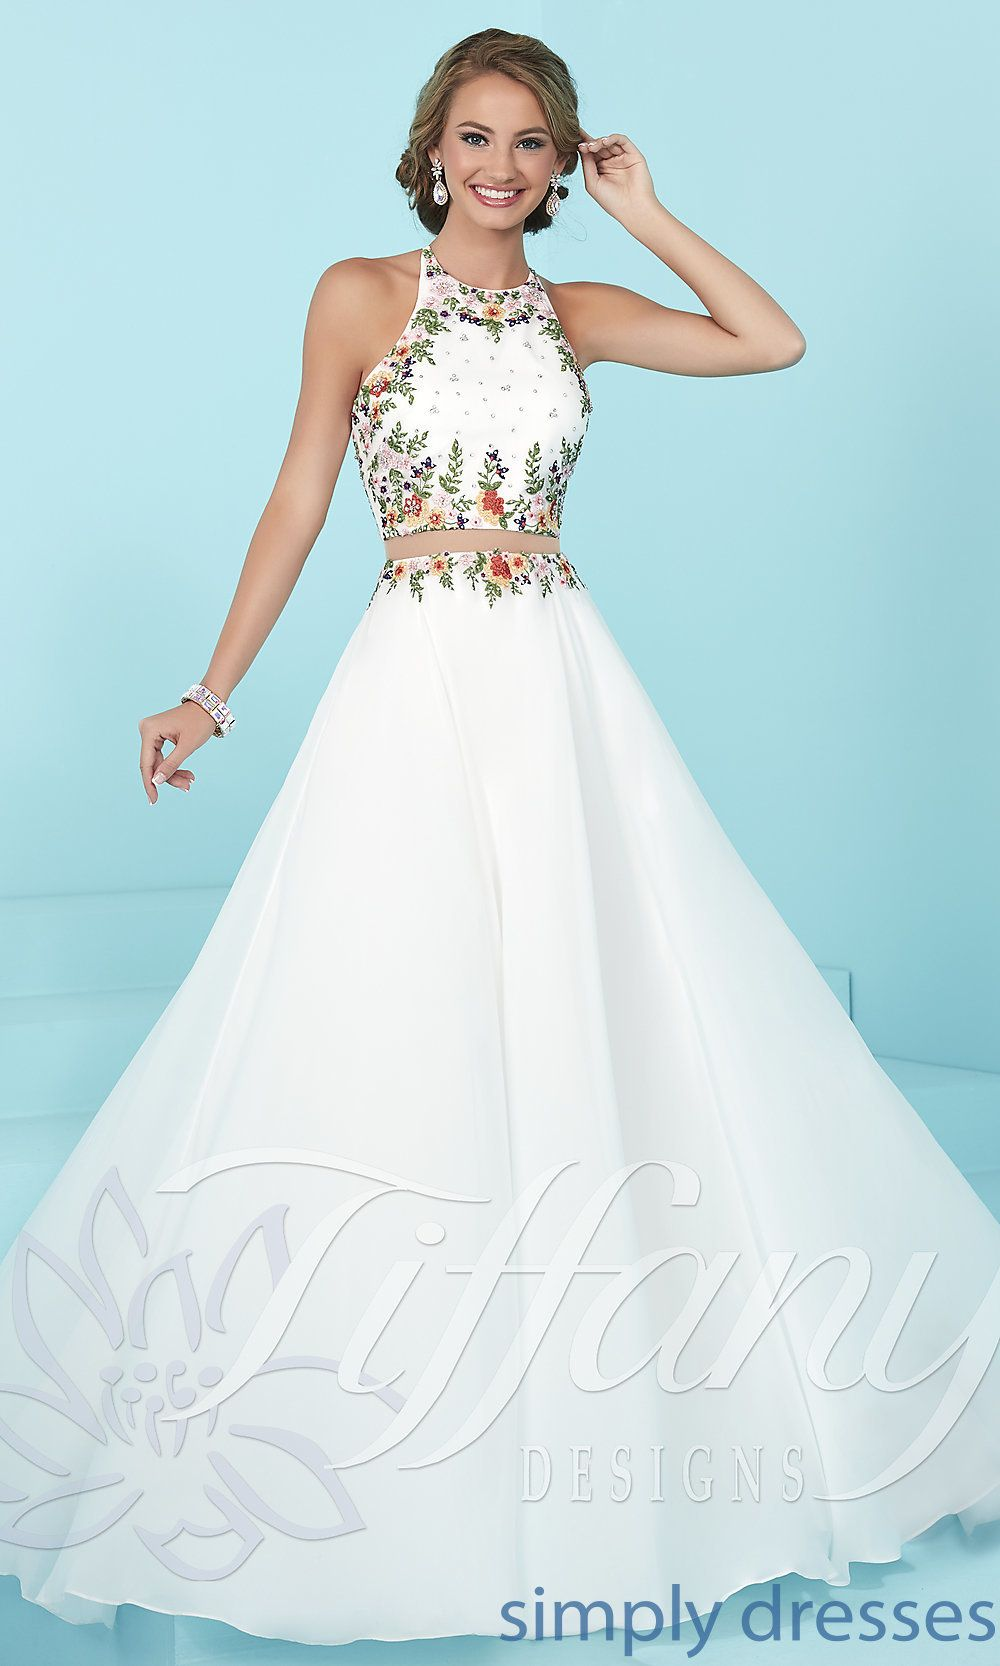 e27ec9670e1 Shop for sleeveless a-line mock two-piece prom dresses at PromGirl. 2017  designer prom dresses with embroidered tops and long full skirts.